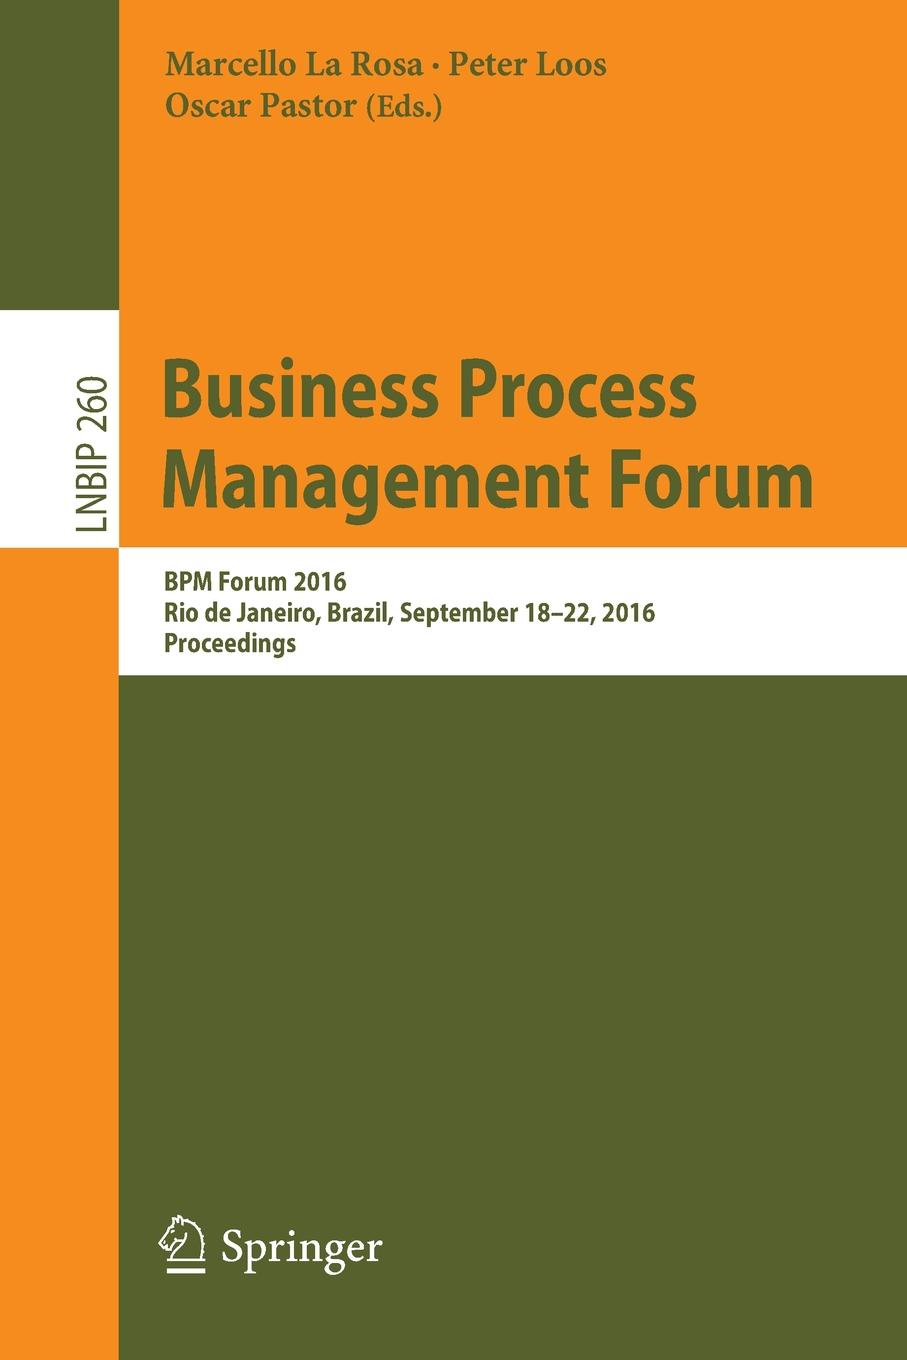 Business Process Management Forum. BPM Forum 2016, Rio de Janeiro, Brazil, September 18-22, 2016, Proceedings все цены